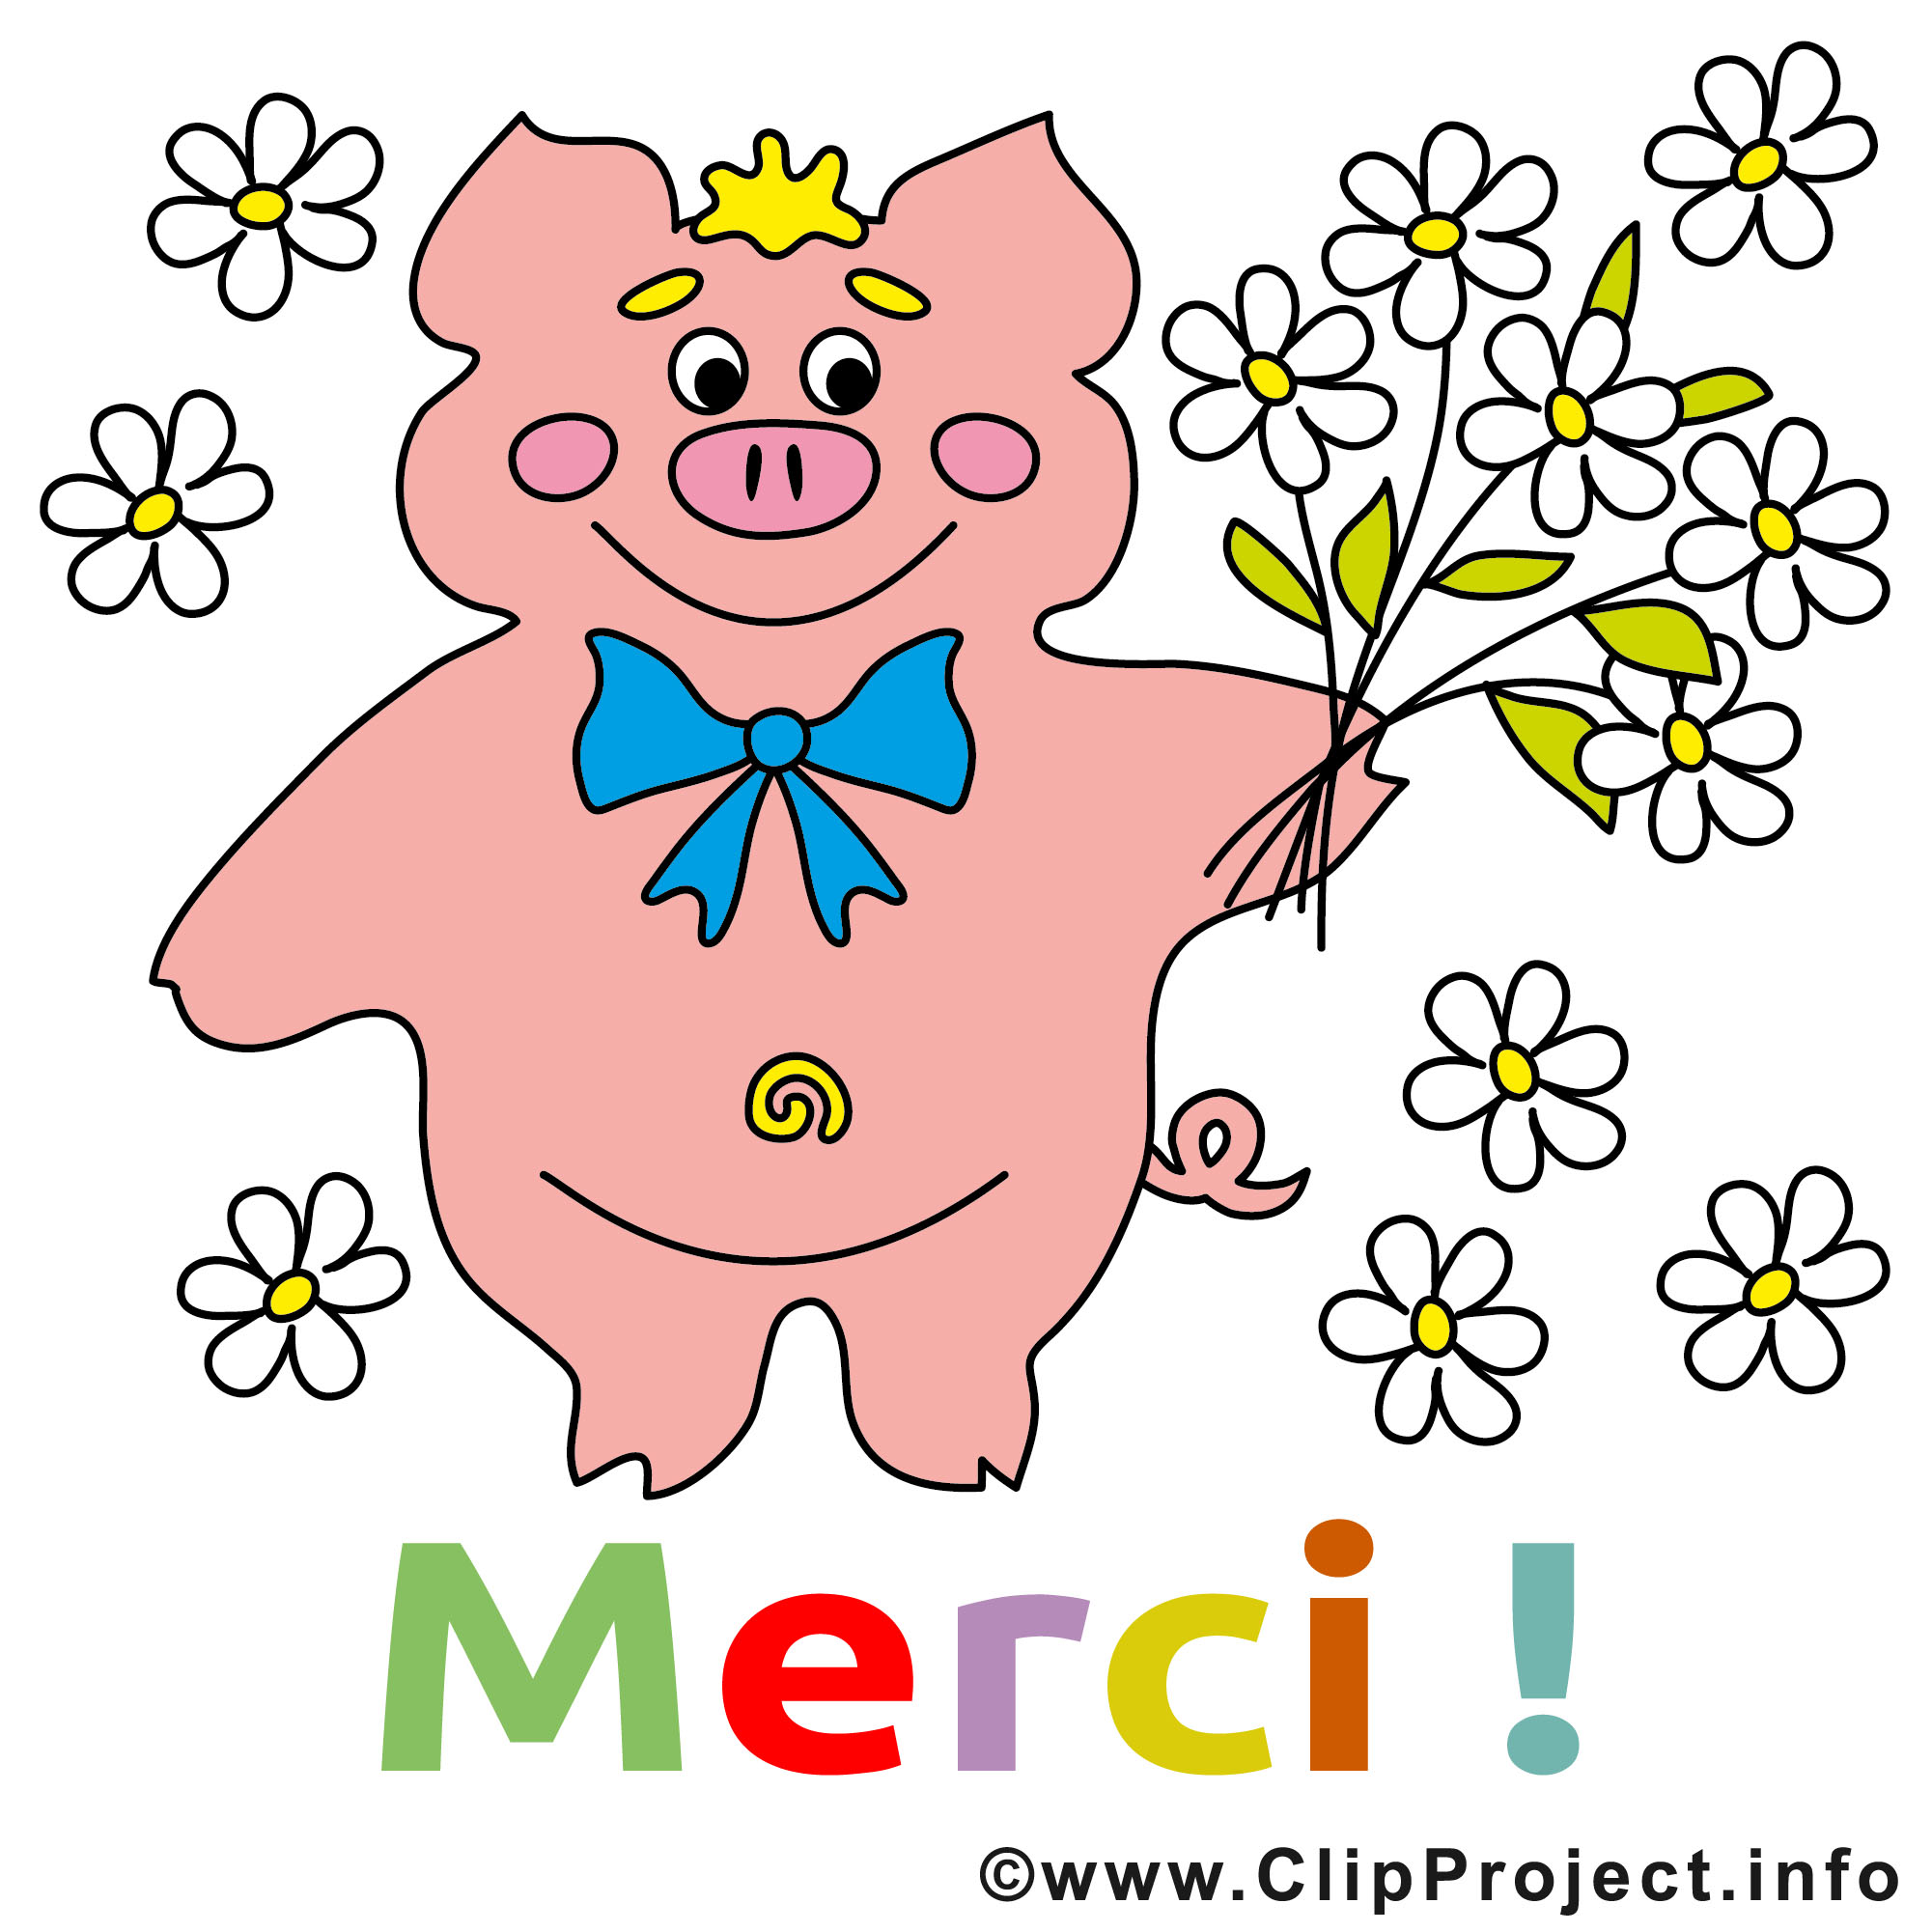 Cochon dessins gratuits merci clipart merci dessin picture image graphic clip art - Dessins gratuits a telecharger ...